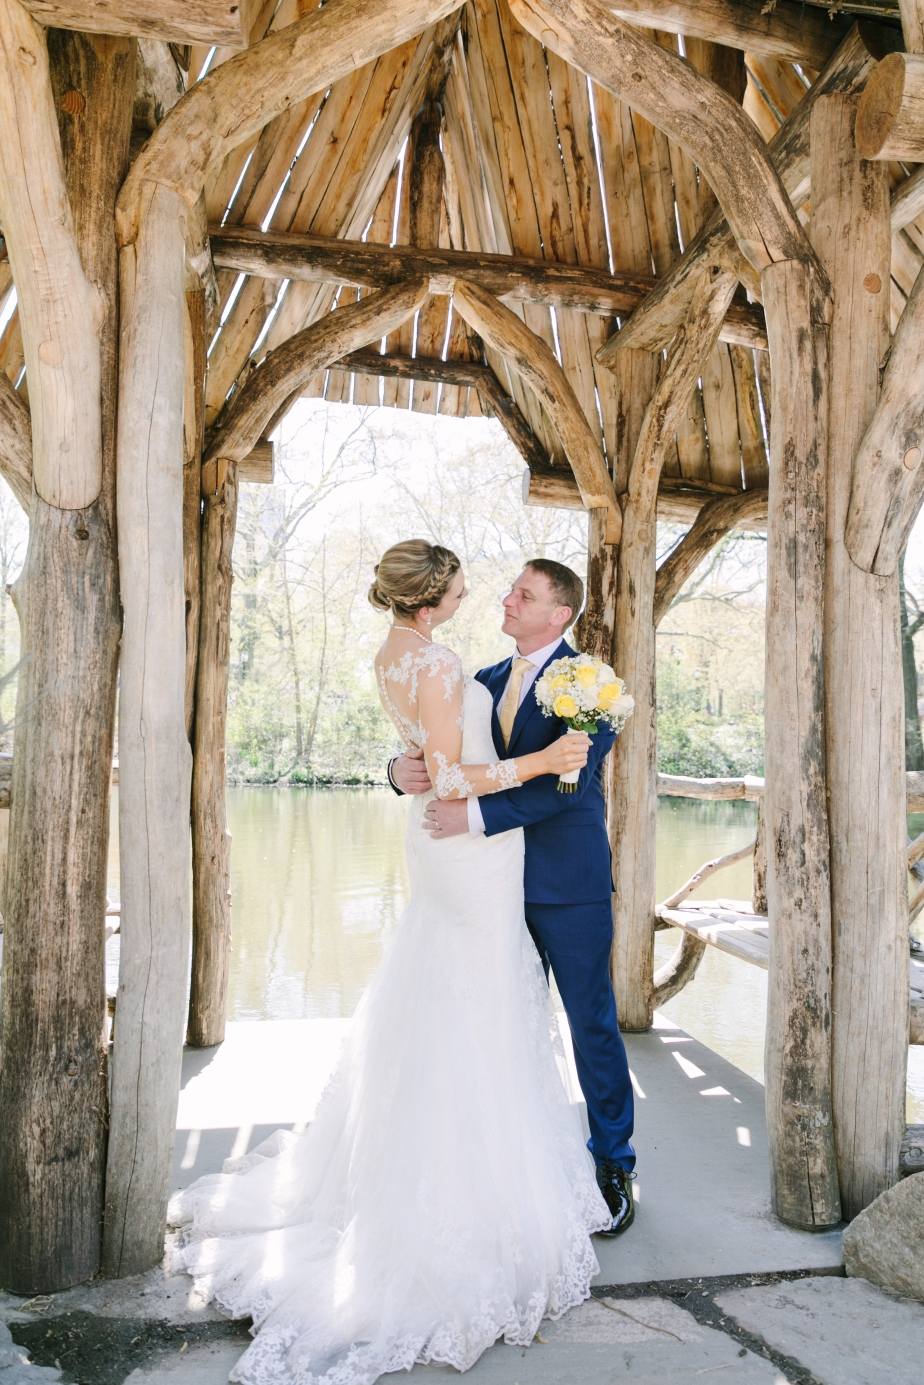 Wagner-cove-central-park-wedding-SS-83